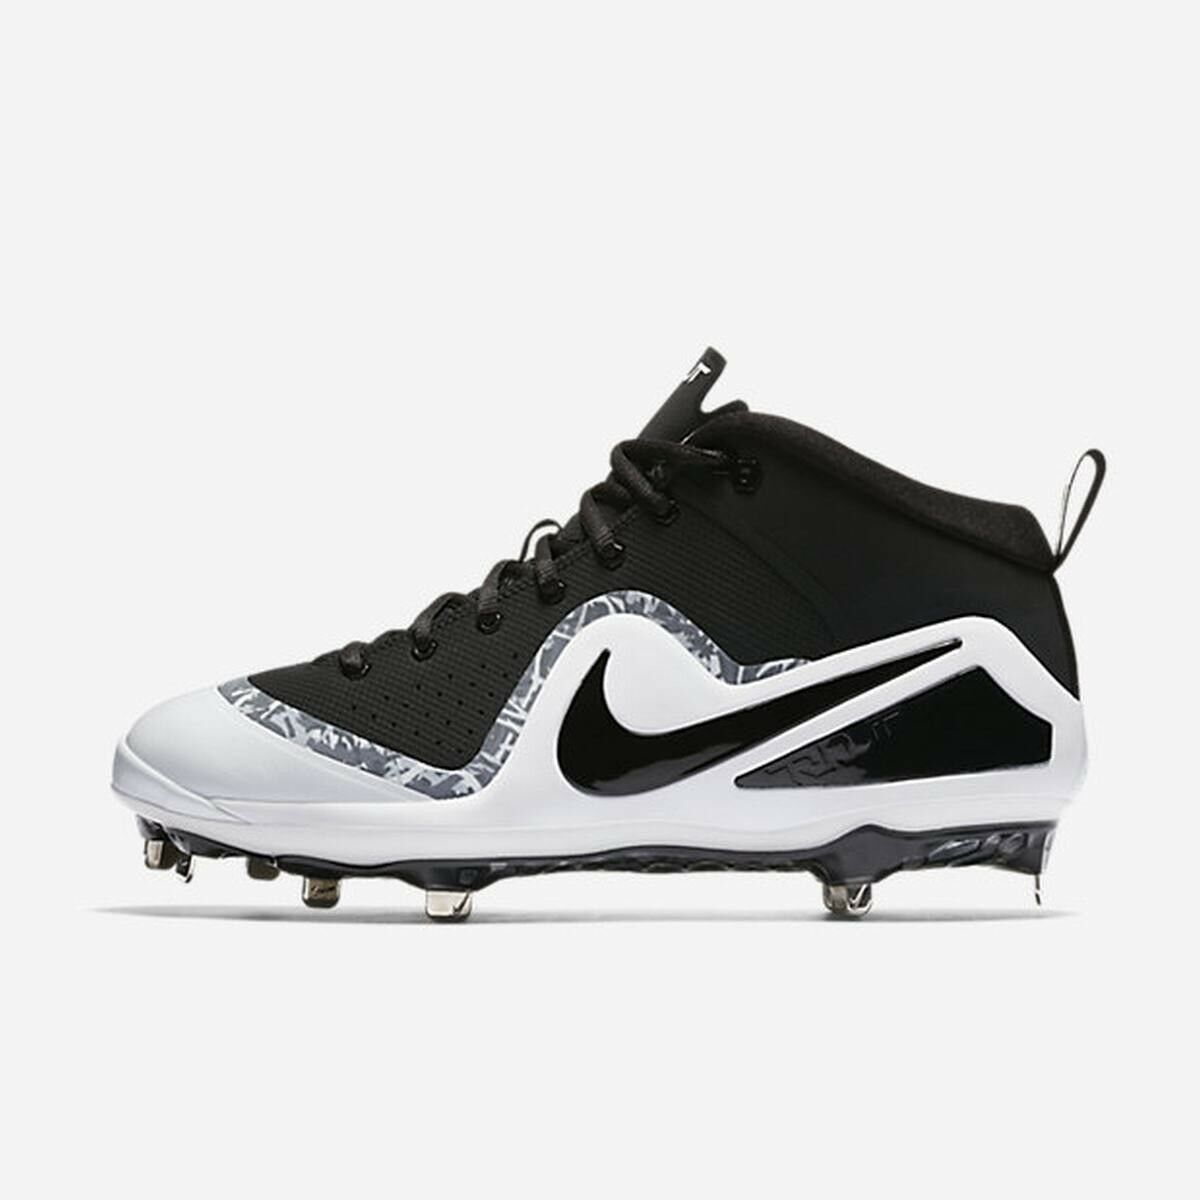 Hot Fashion Nike Force - Zoom Trout 4 917837-001,Black/White/Black/Black - Force NIB 730d28